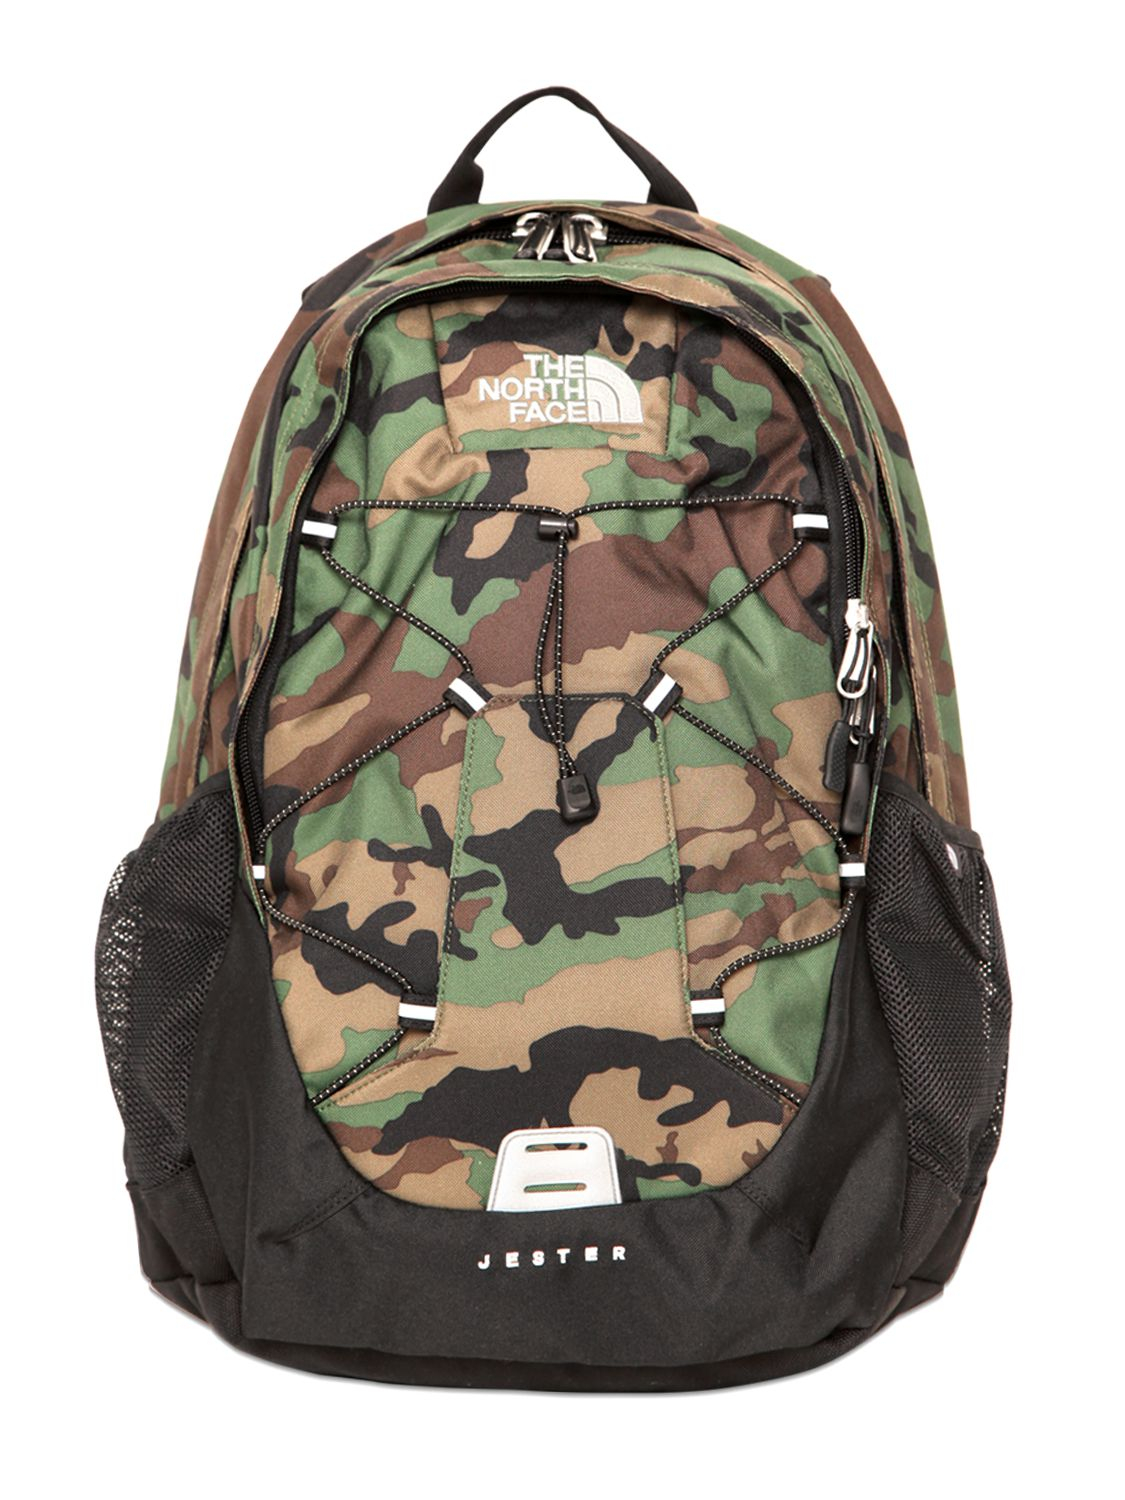 265ae189b7 The North Face Backpack Sale- Fenix Toulouse Handball